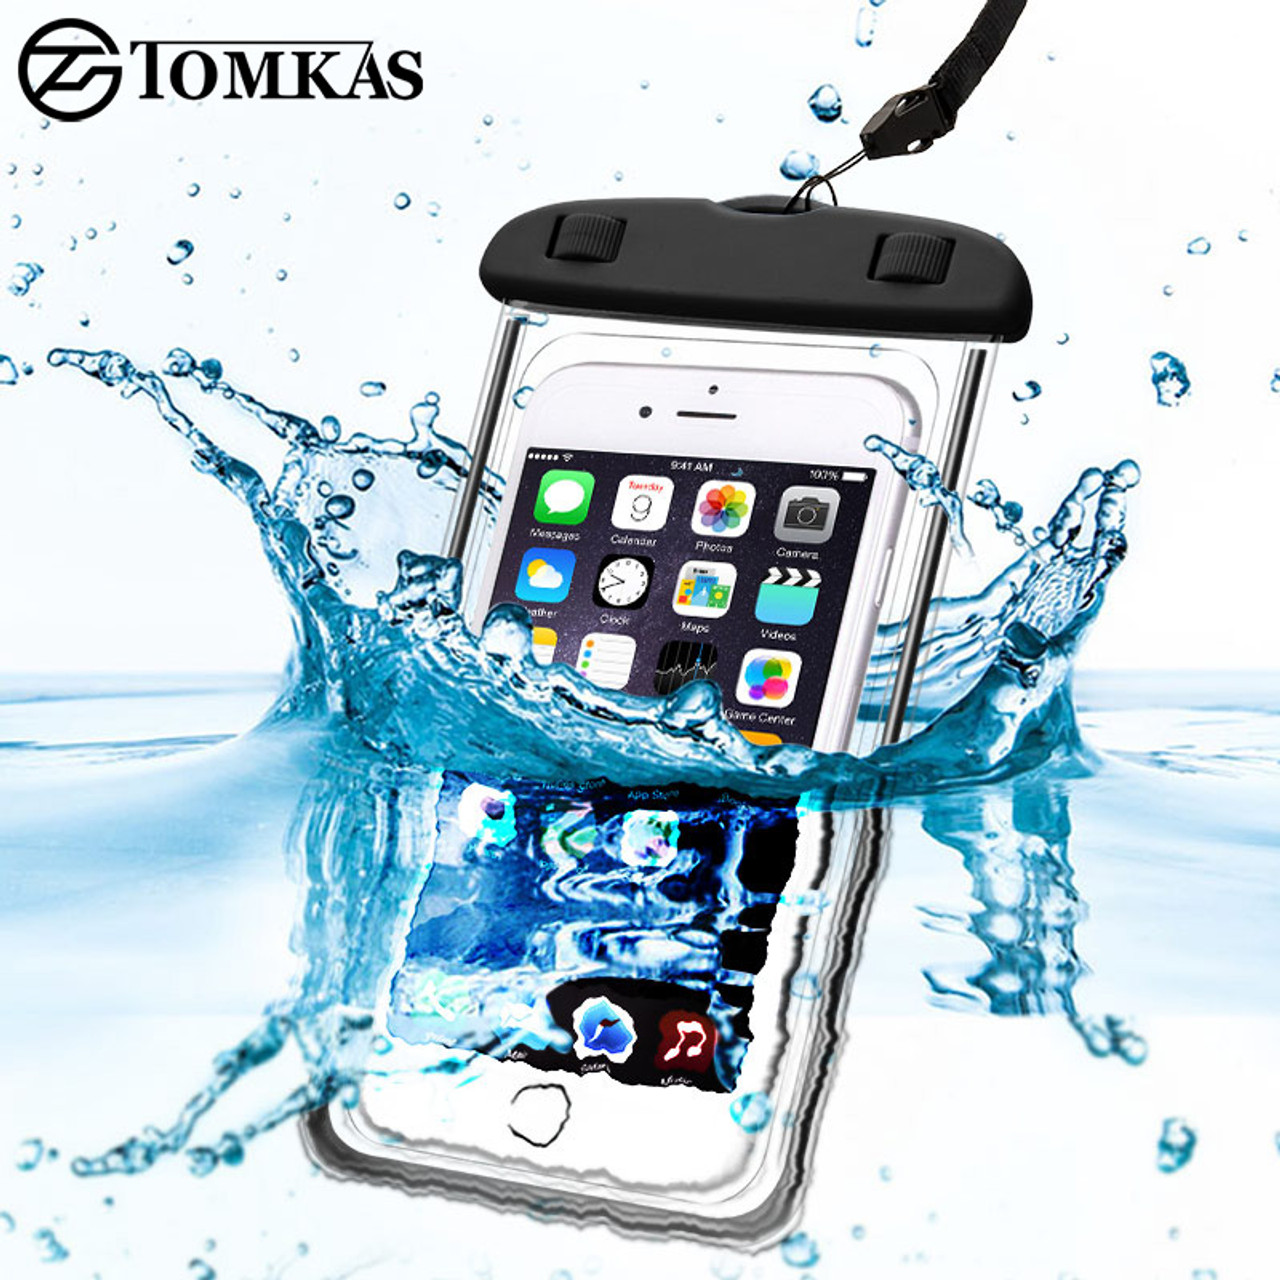 info for c2595 b9e3b Universal Waterproof Case For iPhone 5S 6 6S 7 Plus Samsung Xiaomi Redmi 3s  Note 3 4 Pro MI5 Cover WaterProof Pouch Max 6